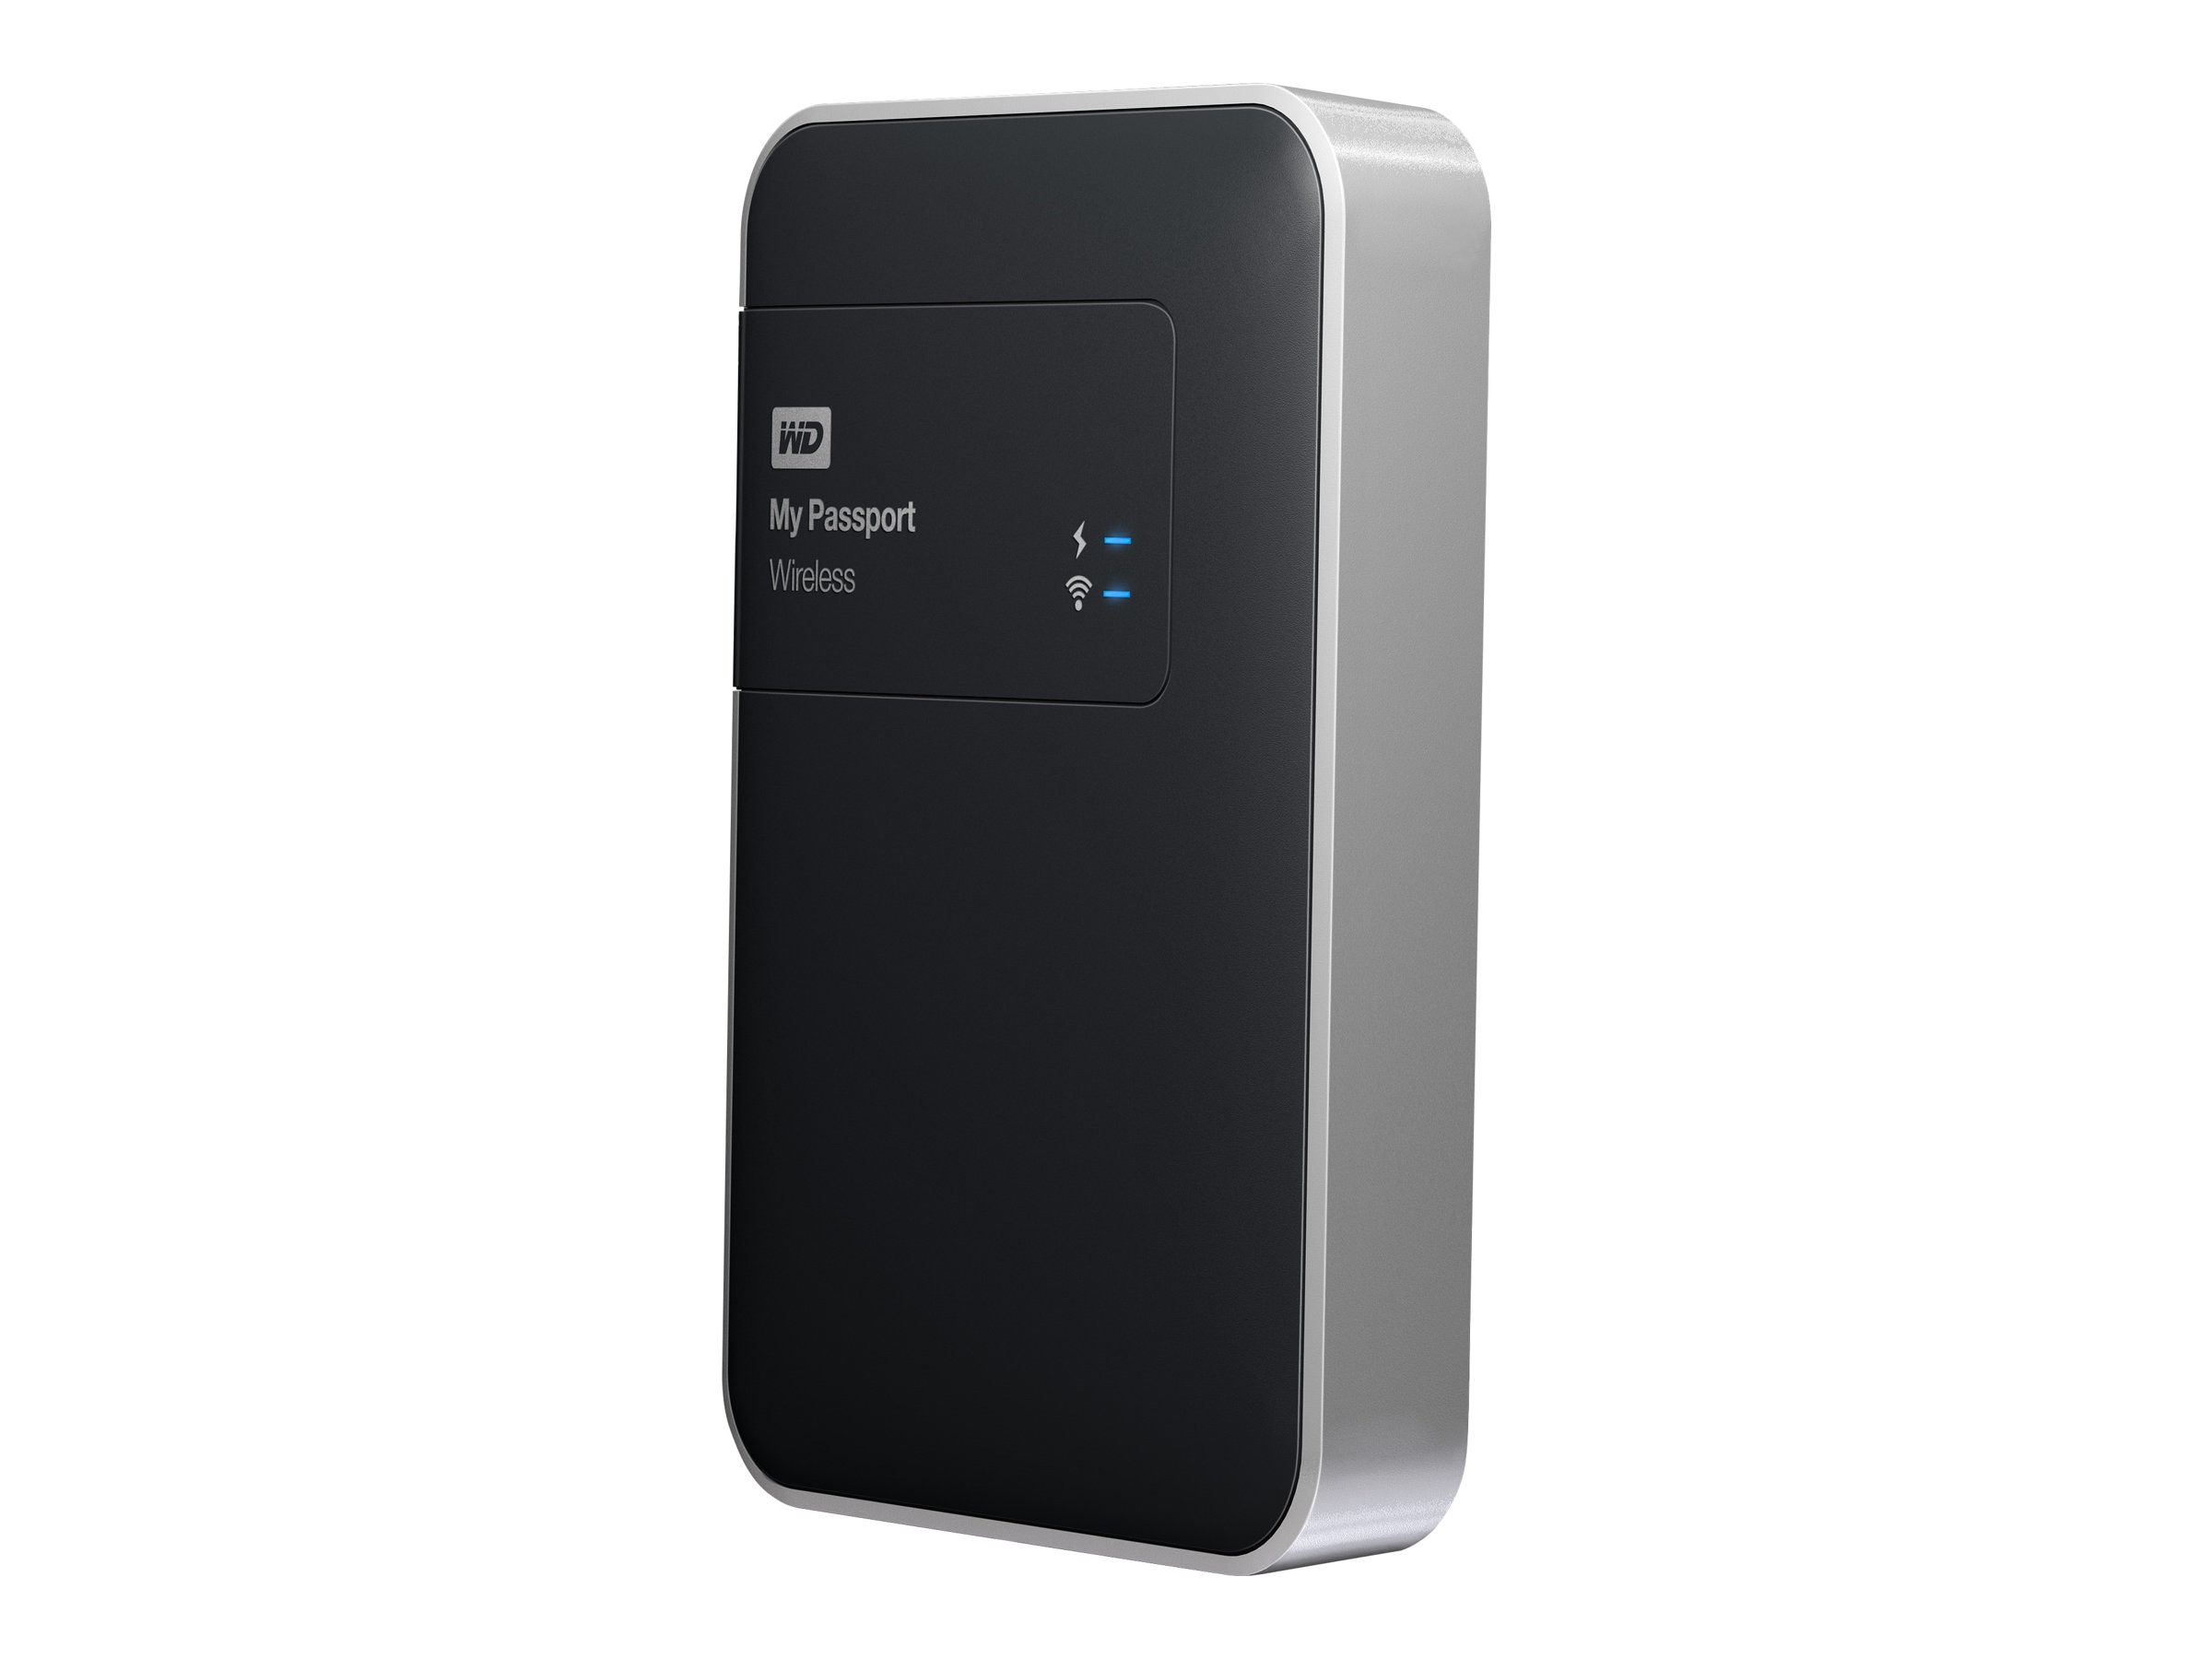 WD 1TB My Passport Wireless Storage - Black